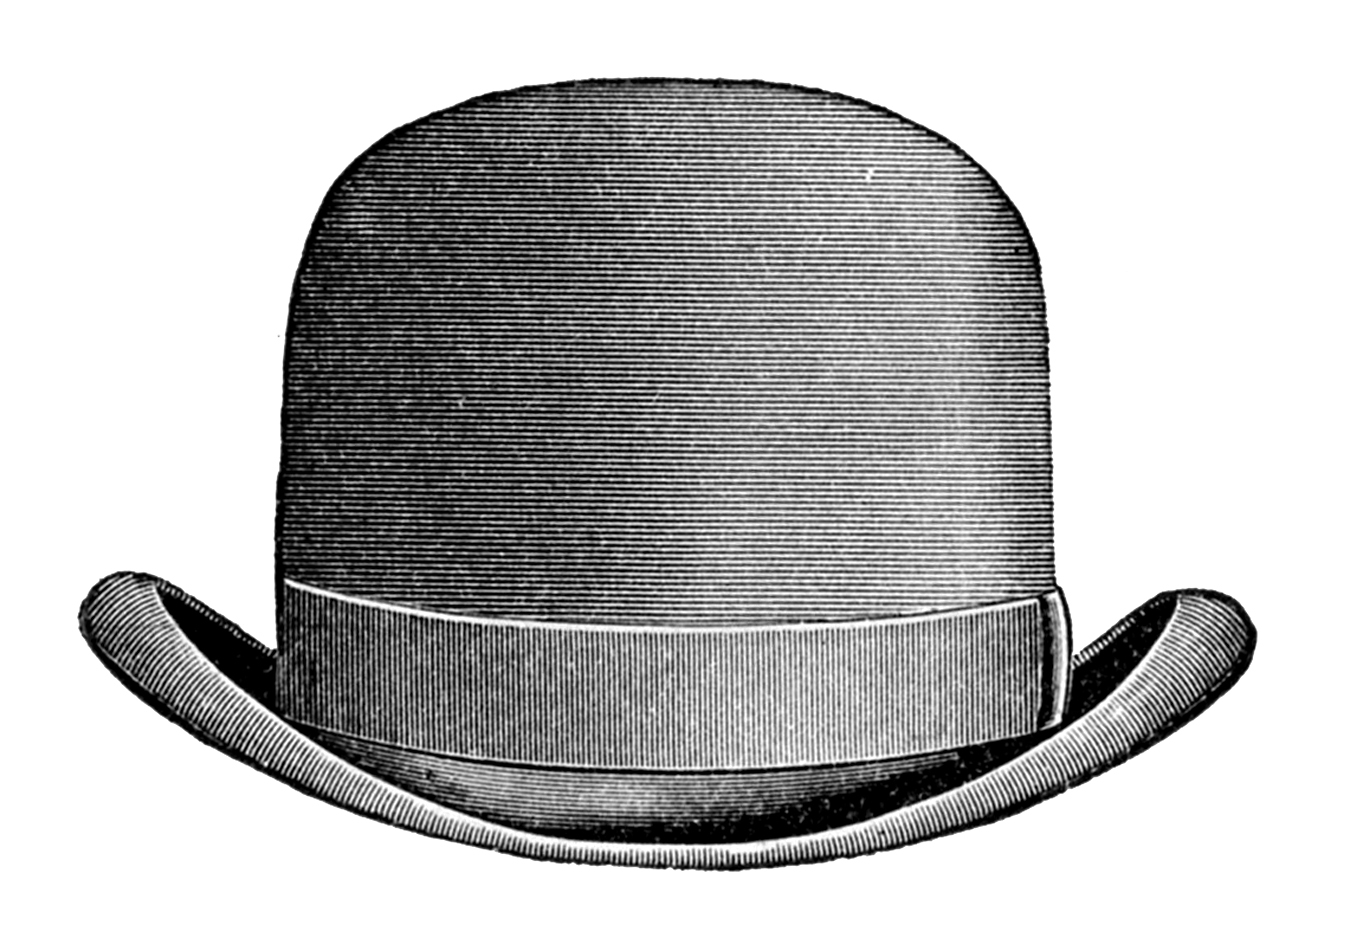 vintage hat clipart - photo #2